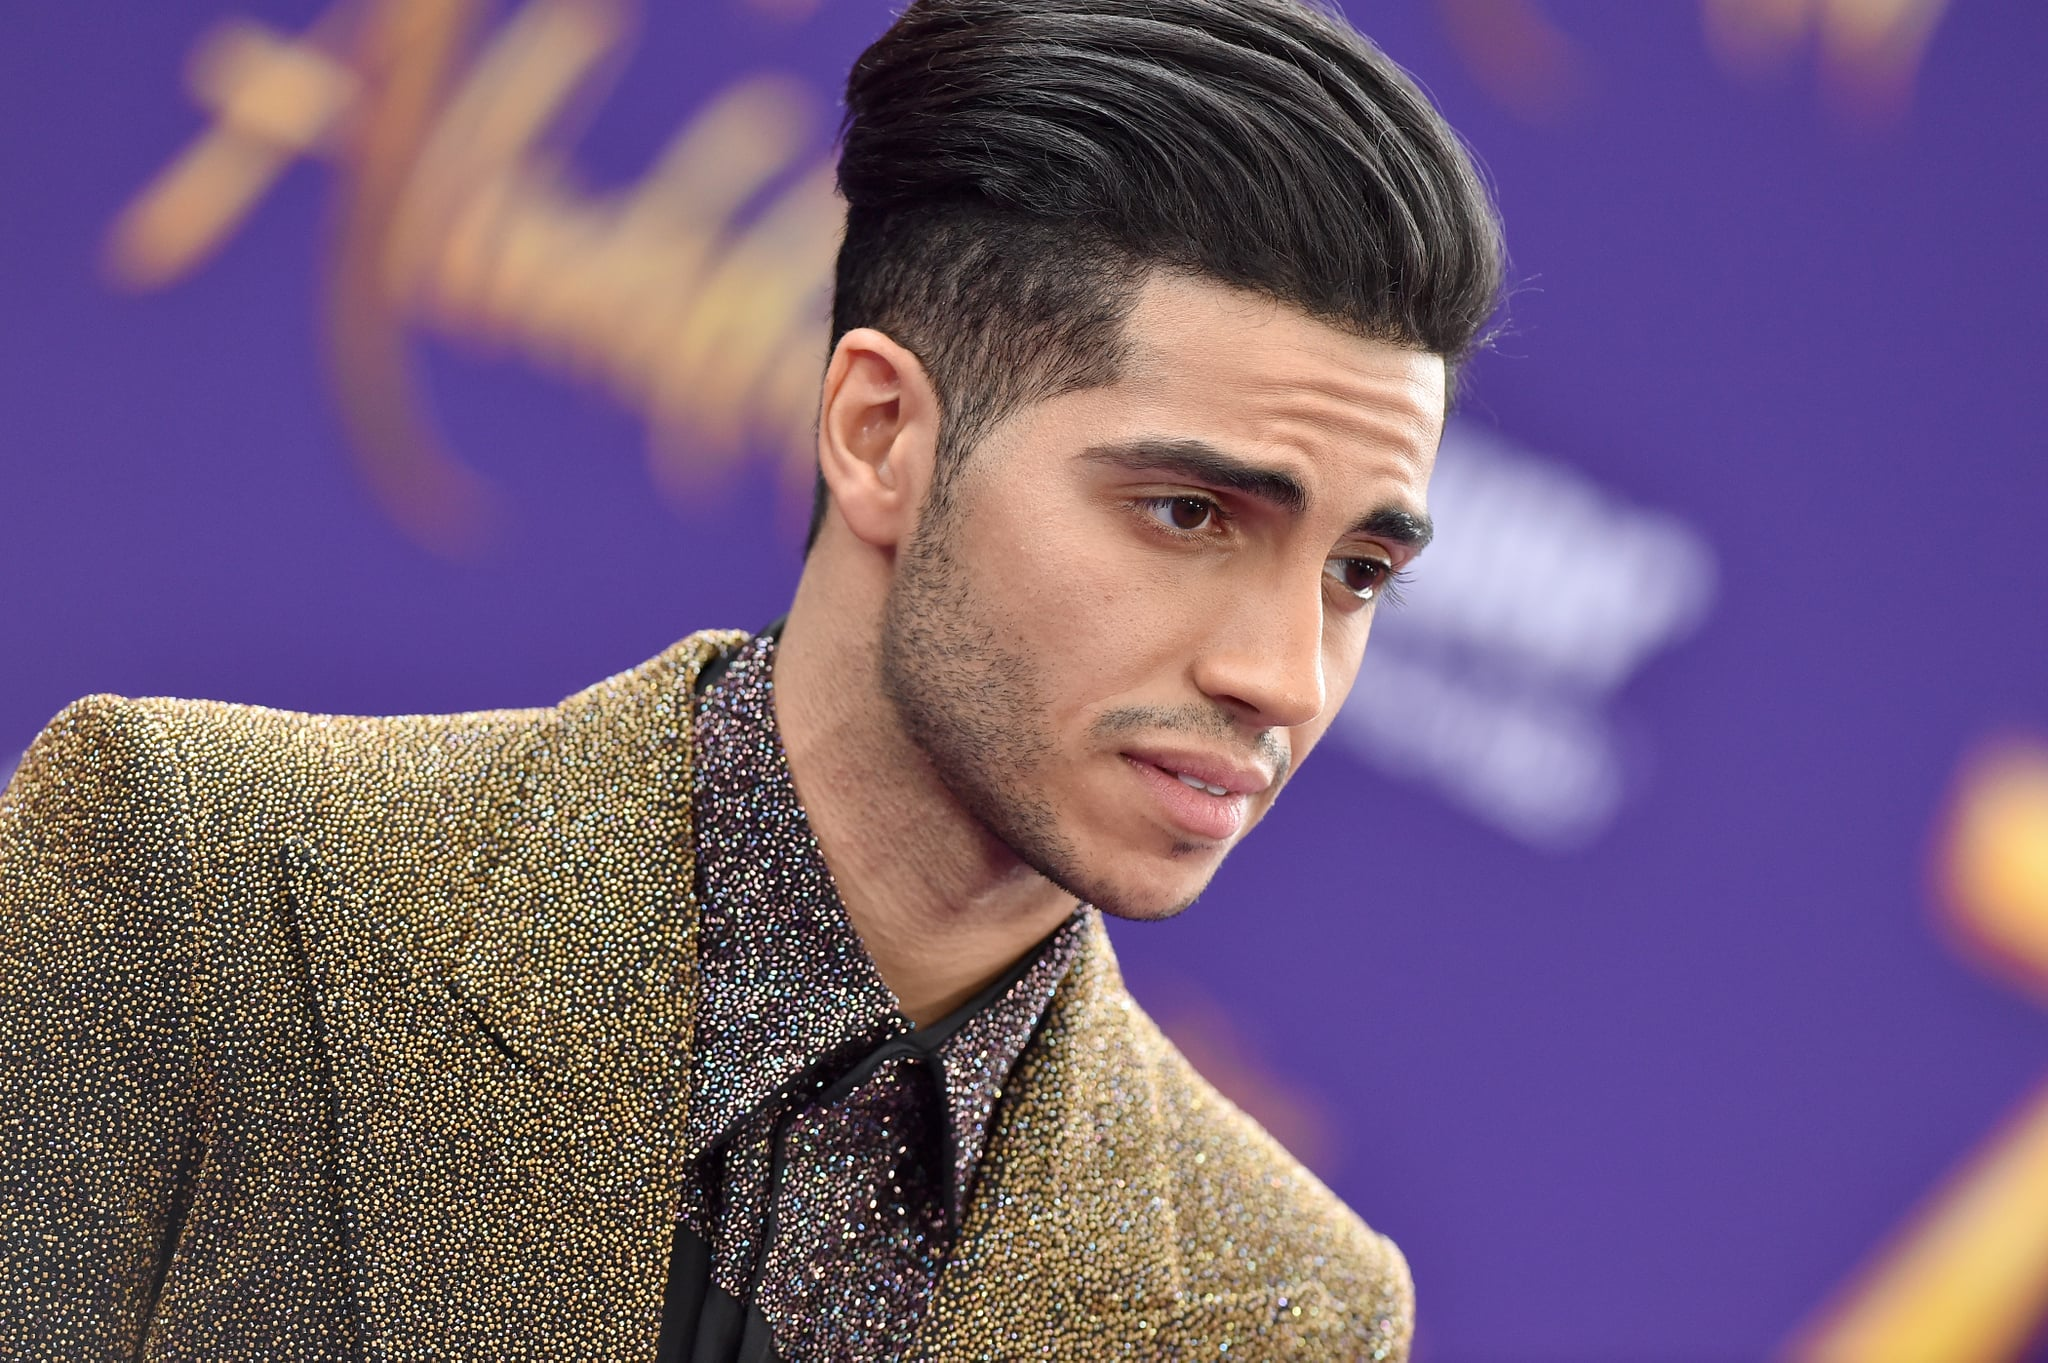 LOS ANGELES, CALIFORNIA - MAY 21: Mena Massoud attends the premiere of Disney's